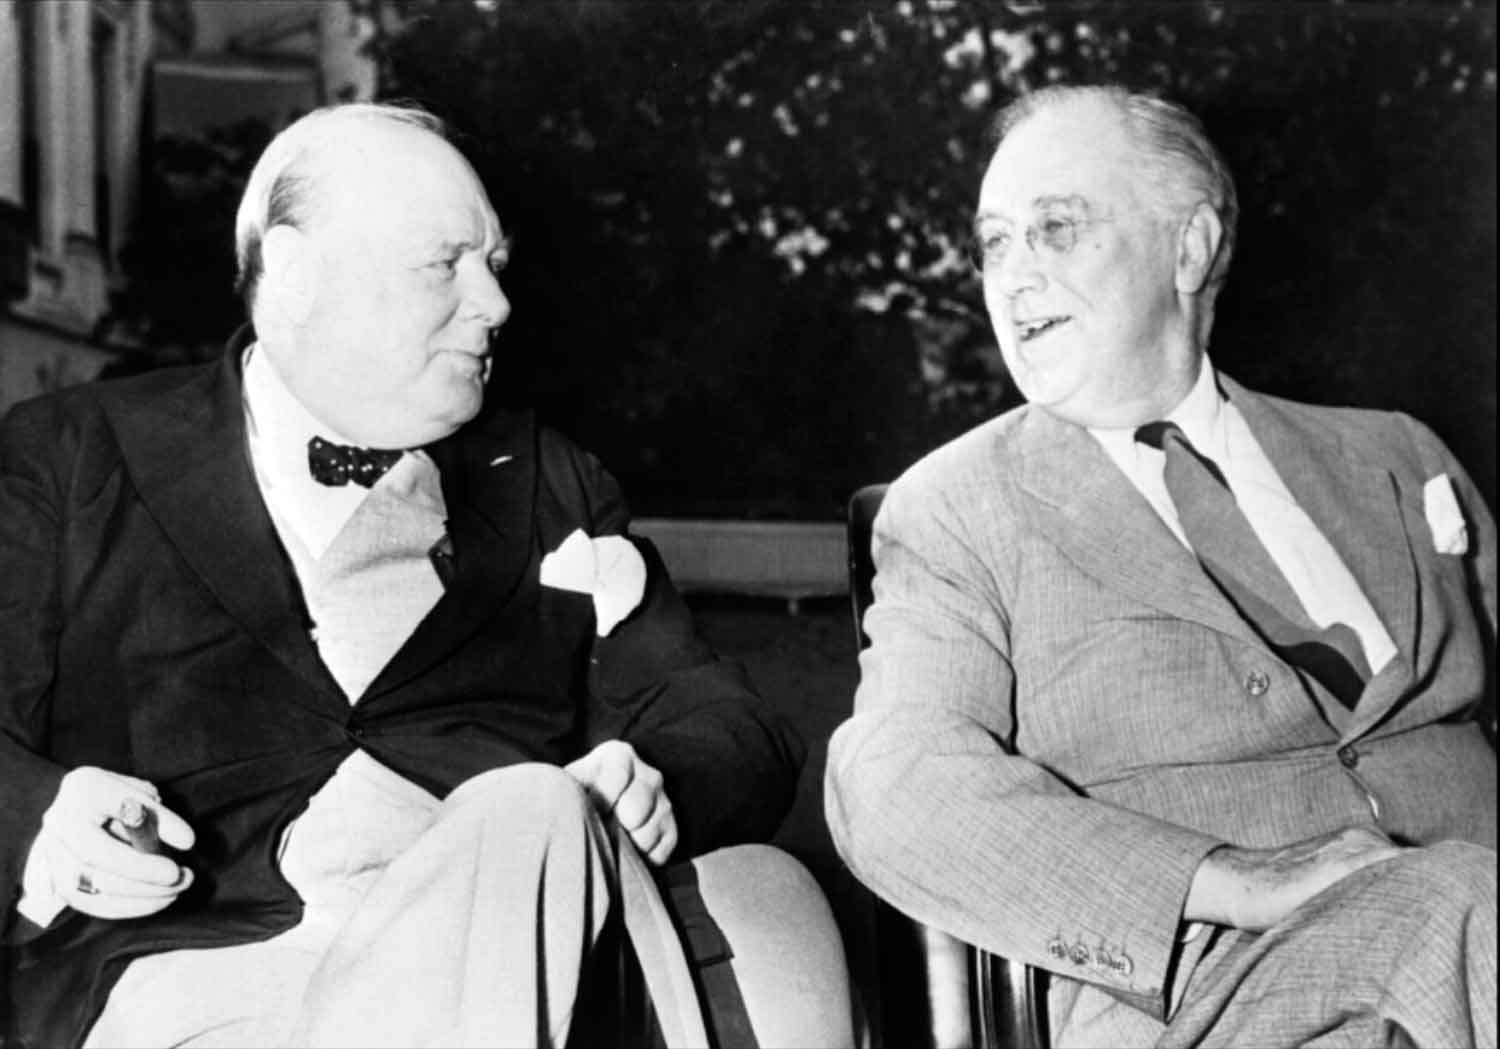 Winston Churchill and Franklin D Roosevelt relax in the grounds of the White House in Washington DC prior to a daily meeting of the joint Chiefs of Staff from the United Kingdom and United States to discuss Allied war strategy. (World War II Today)